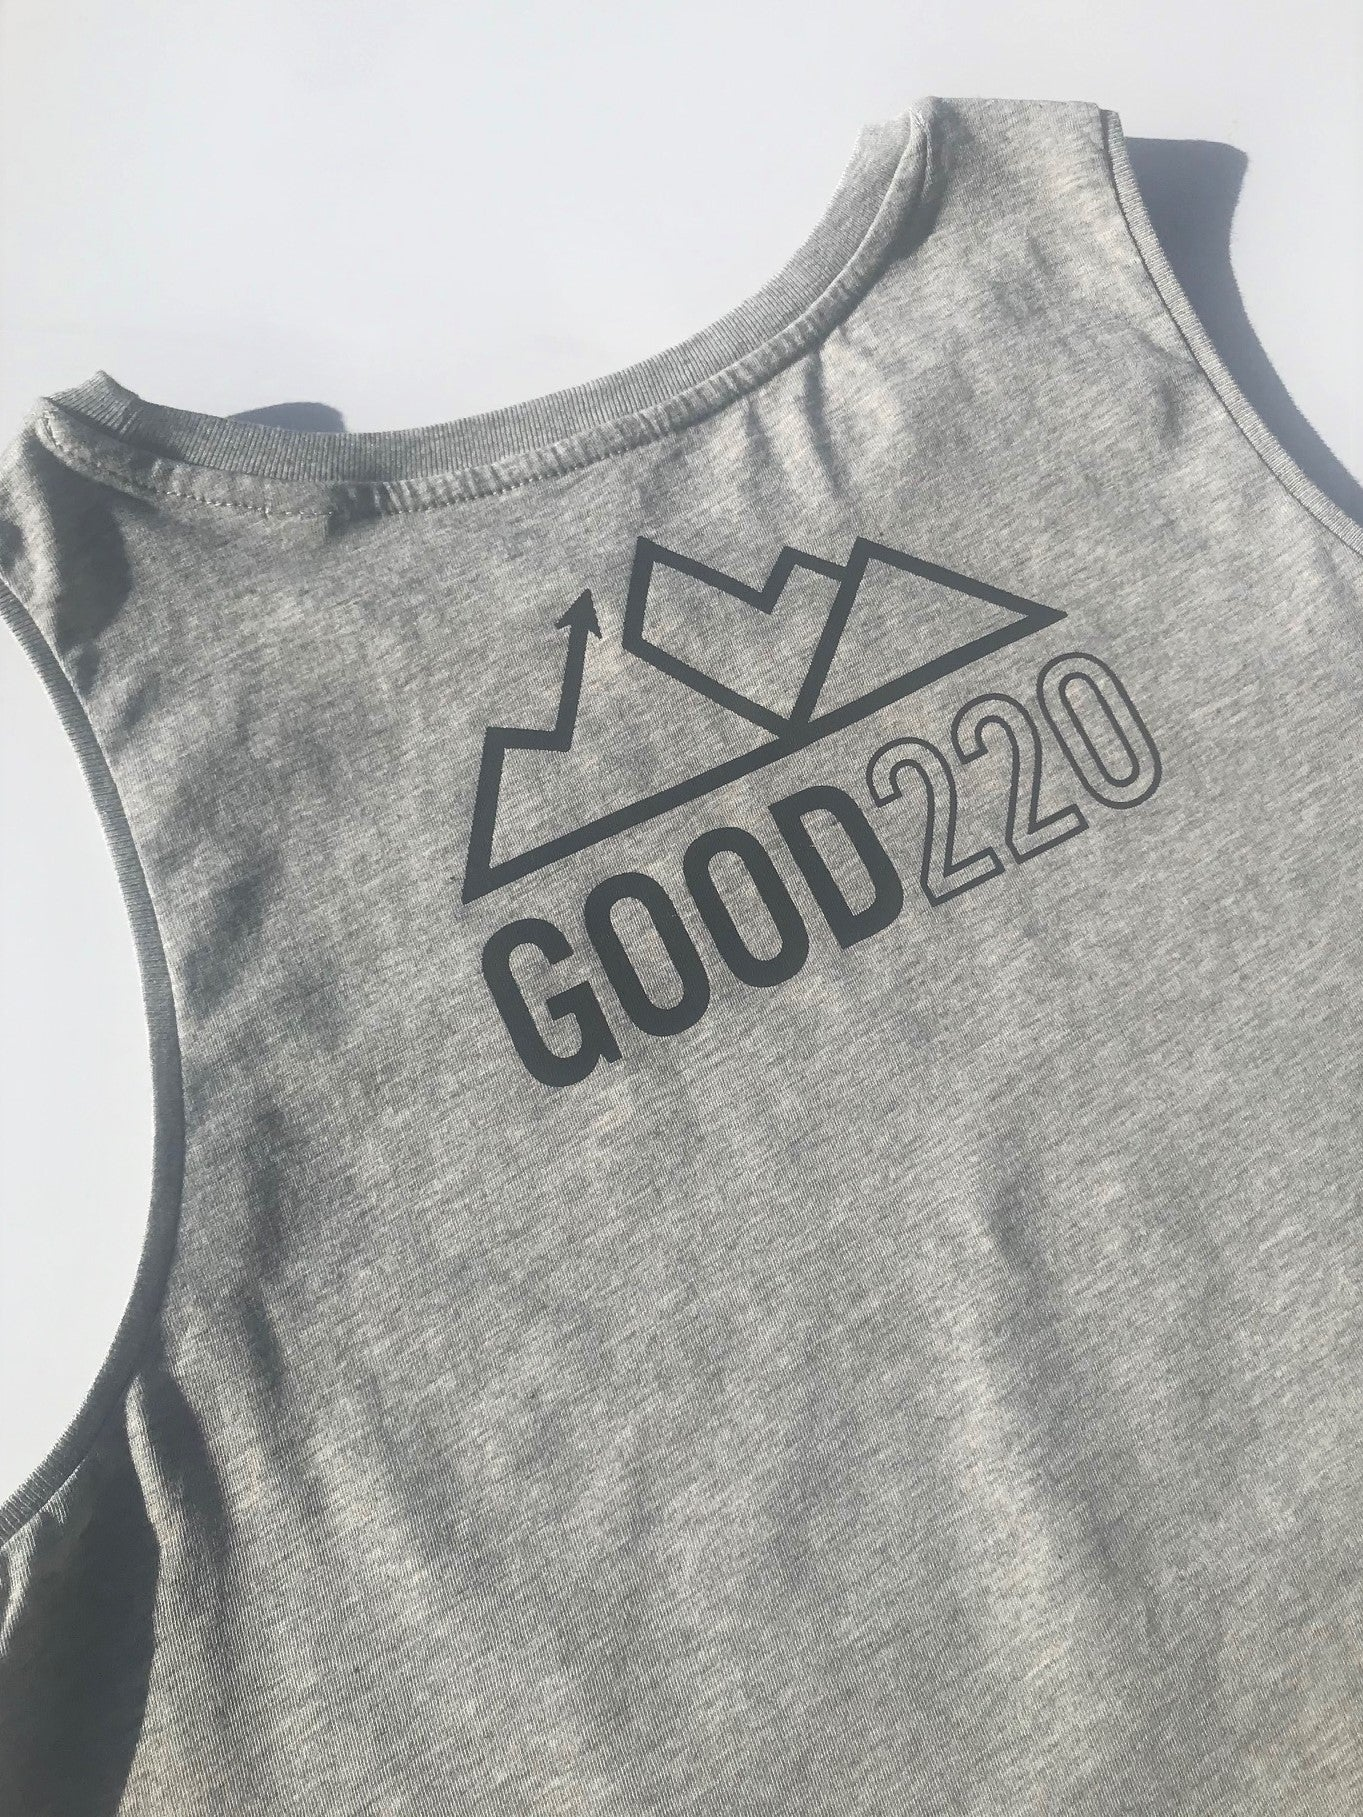 Never Give Up Crop vest *Good220 Collab*